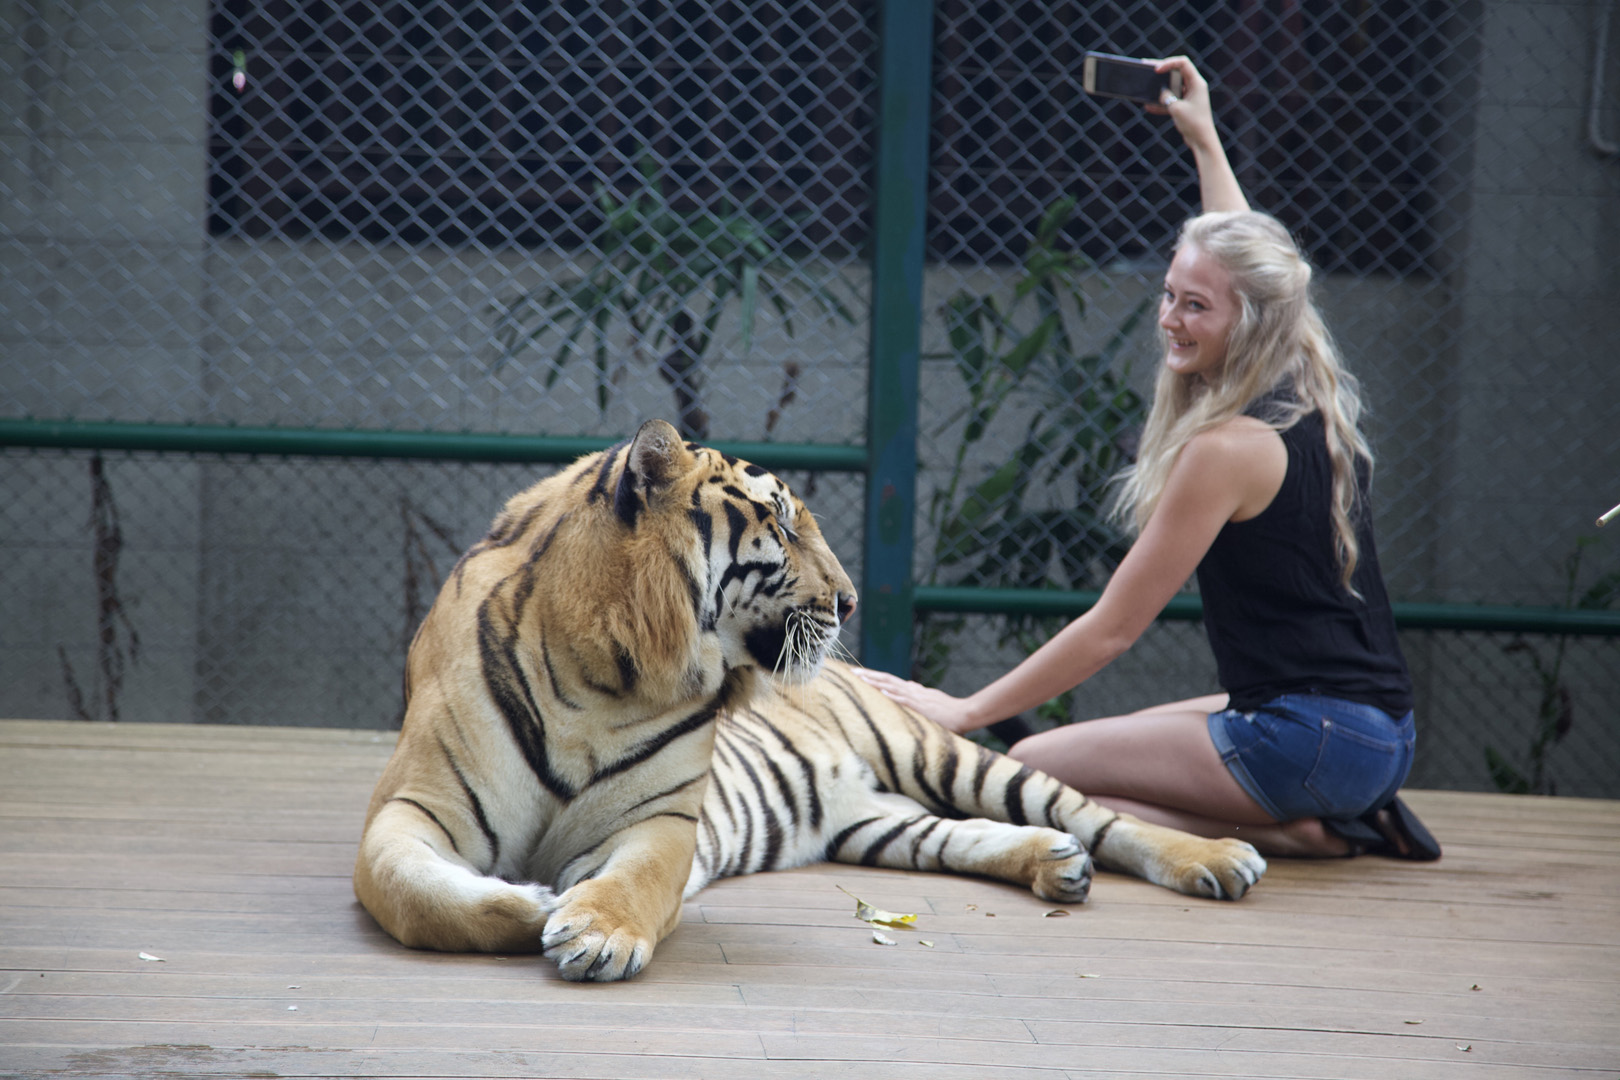 Russian tourist takes a selfie, Tiger Kingdom